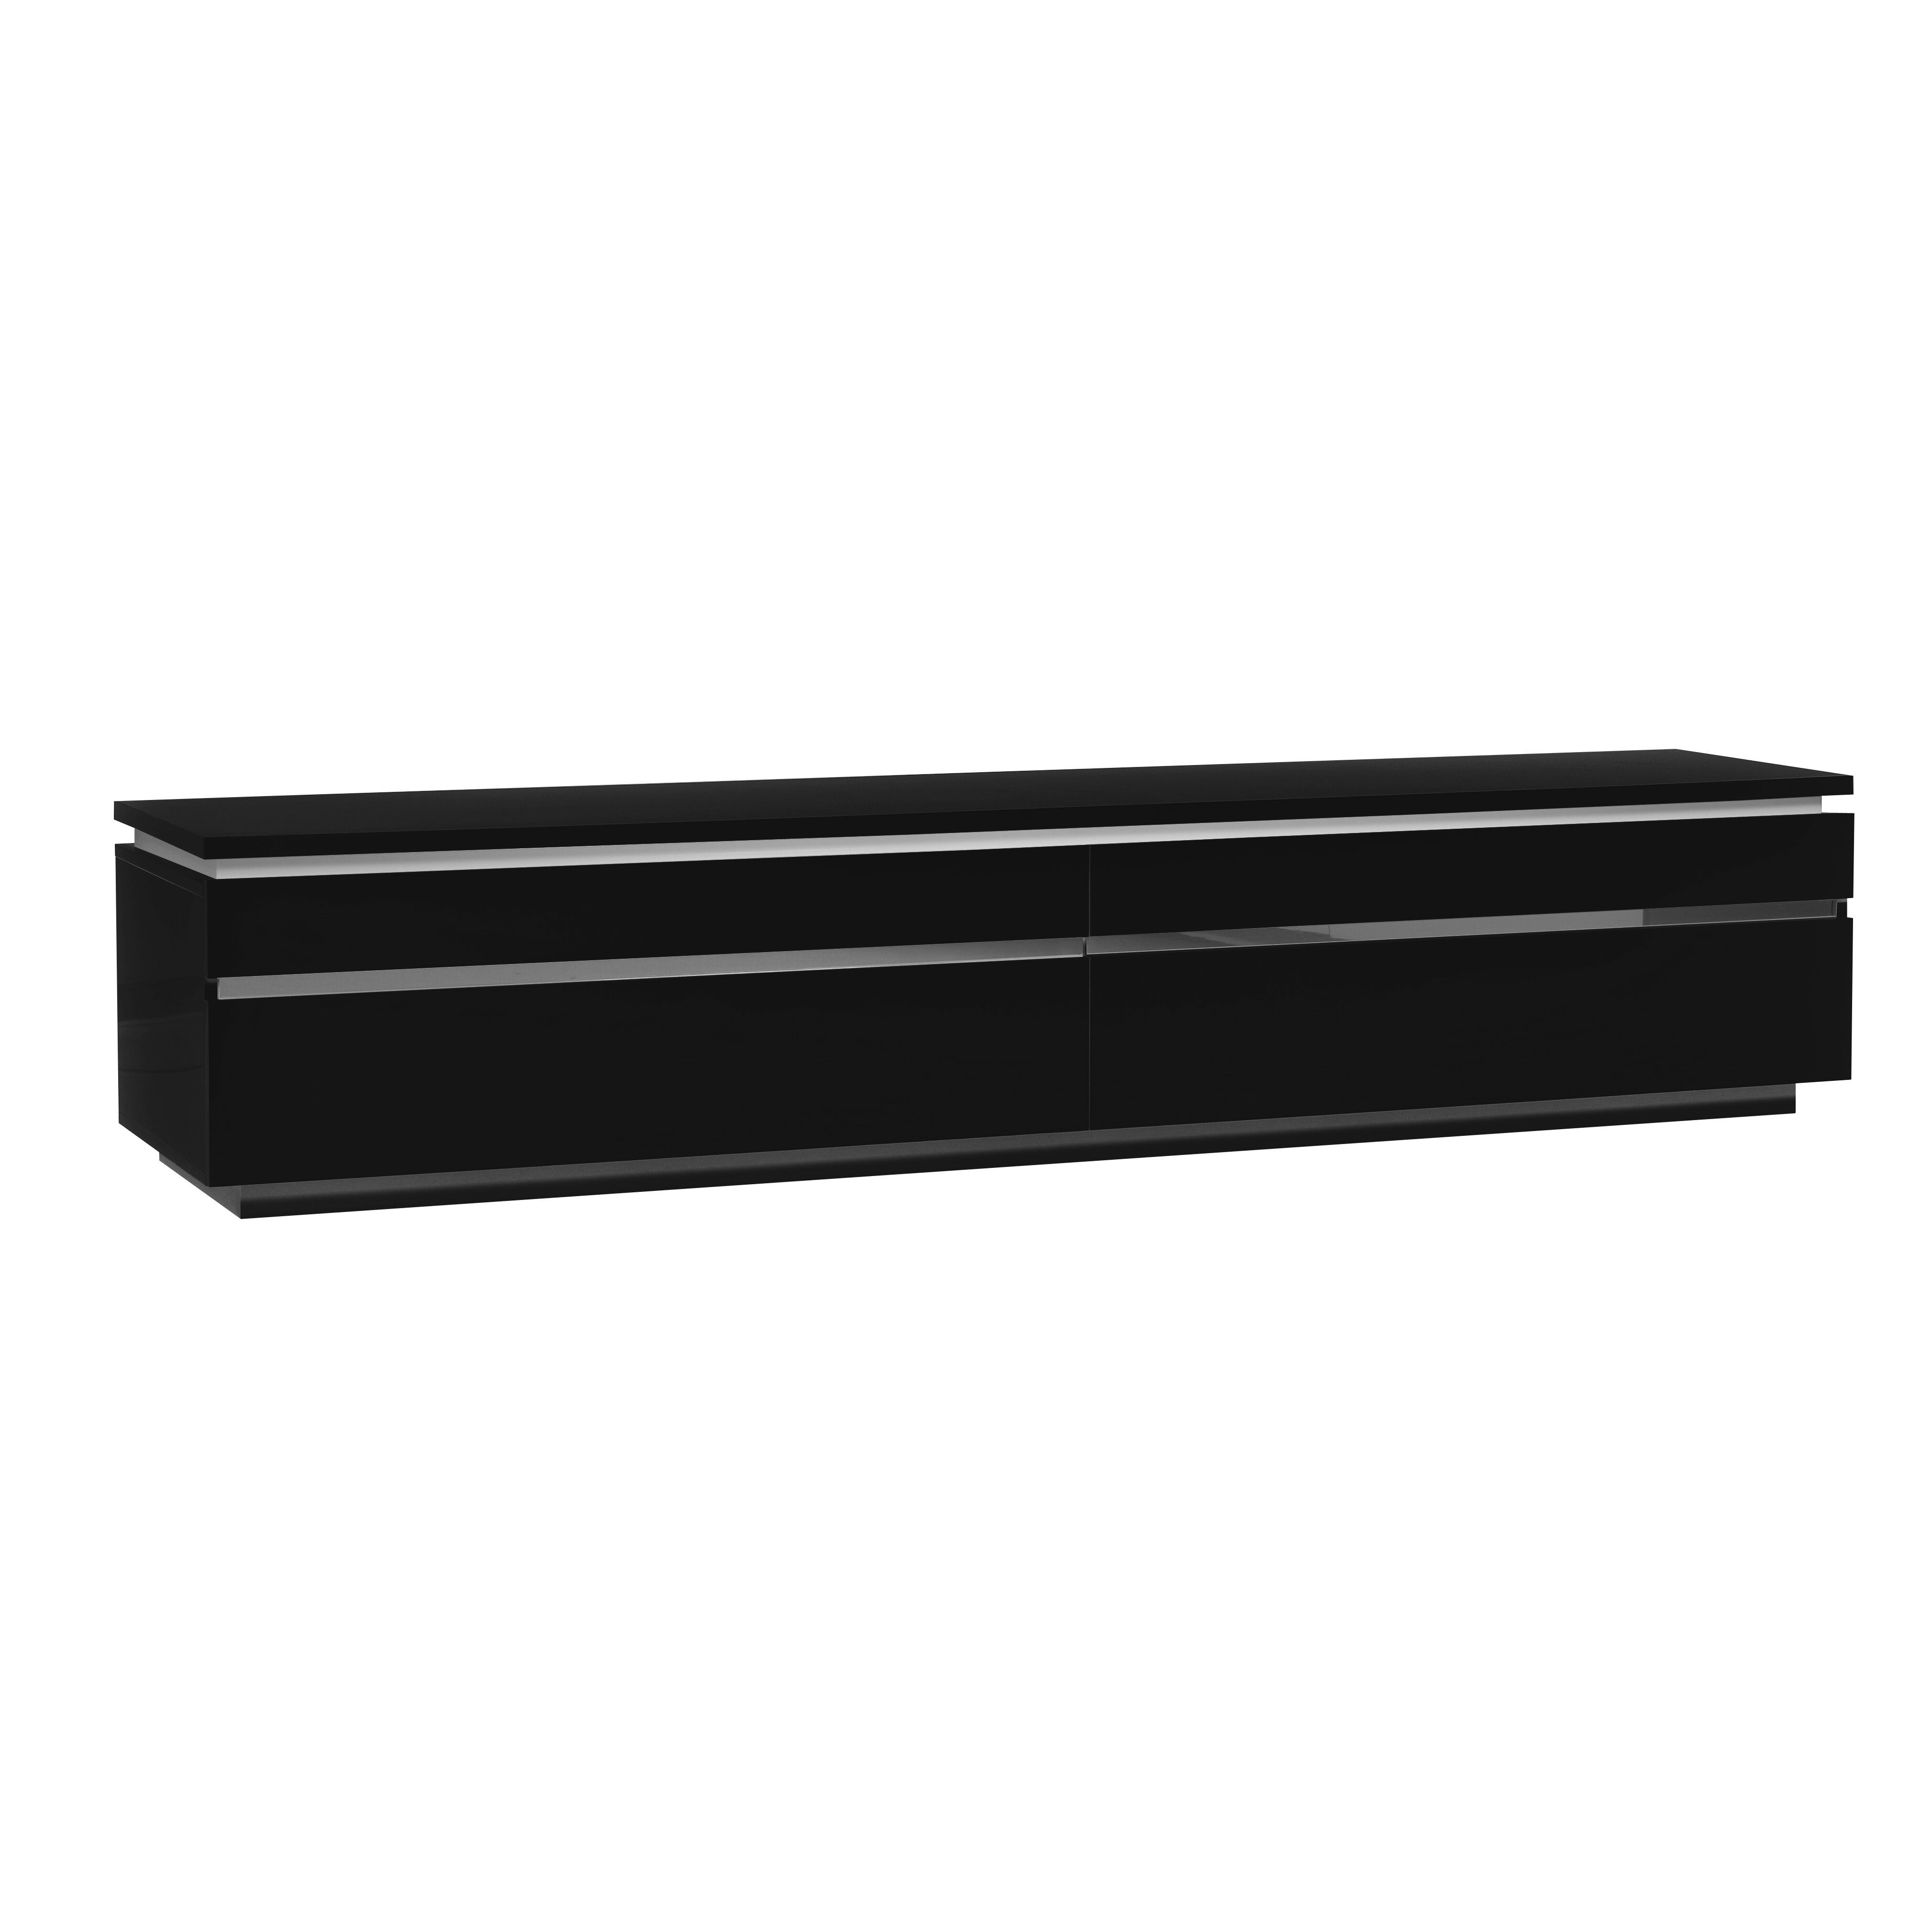 Urban designs summerside tv stand for tvs up to 60 for Sideboard 80 breit